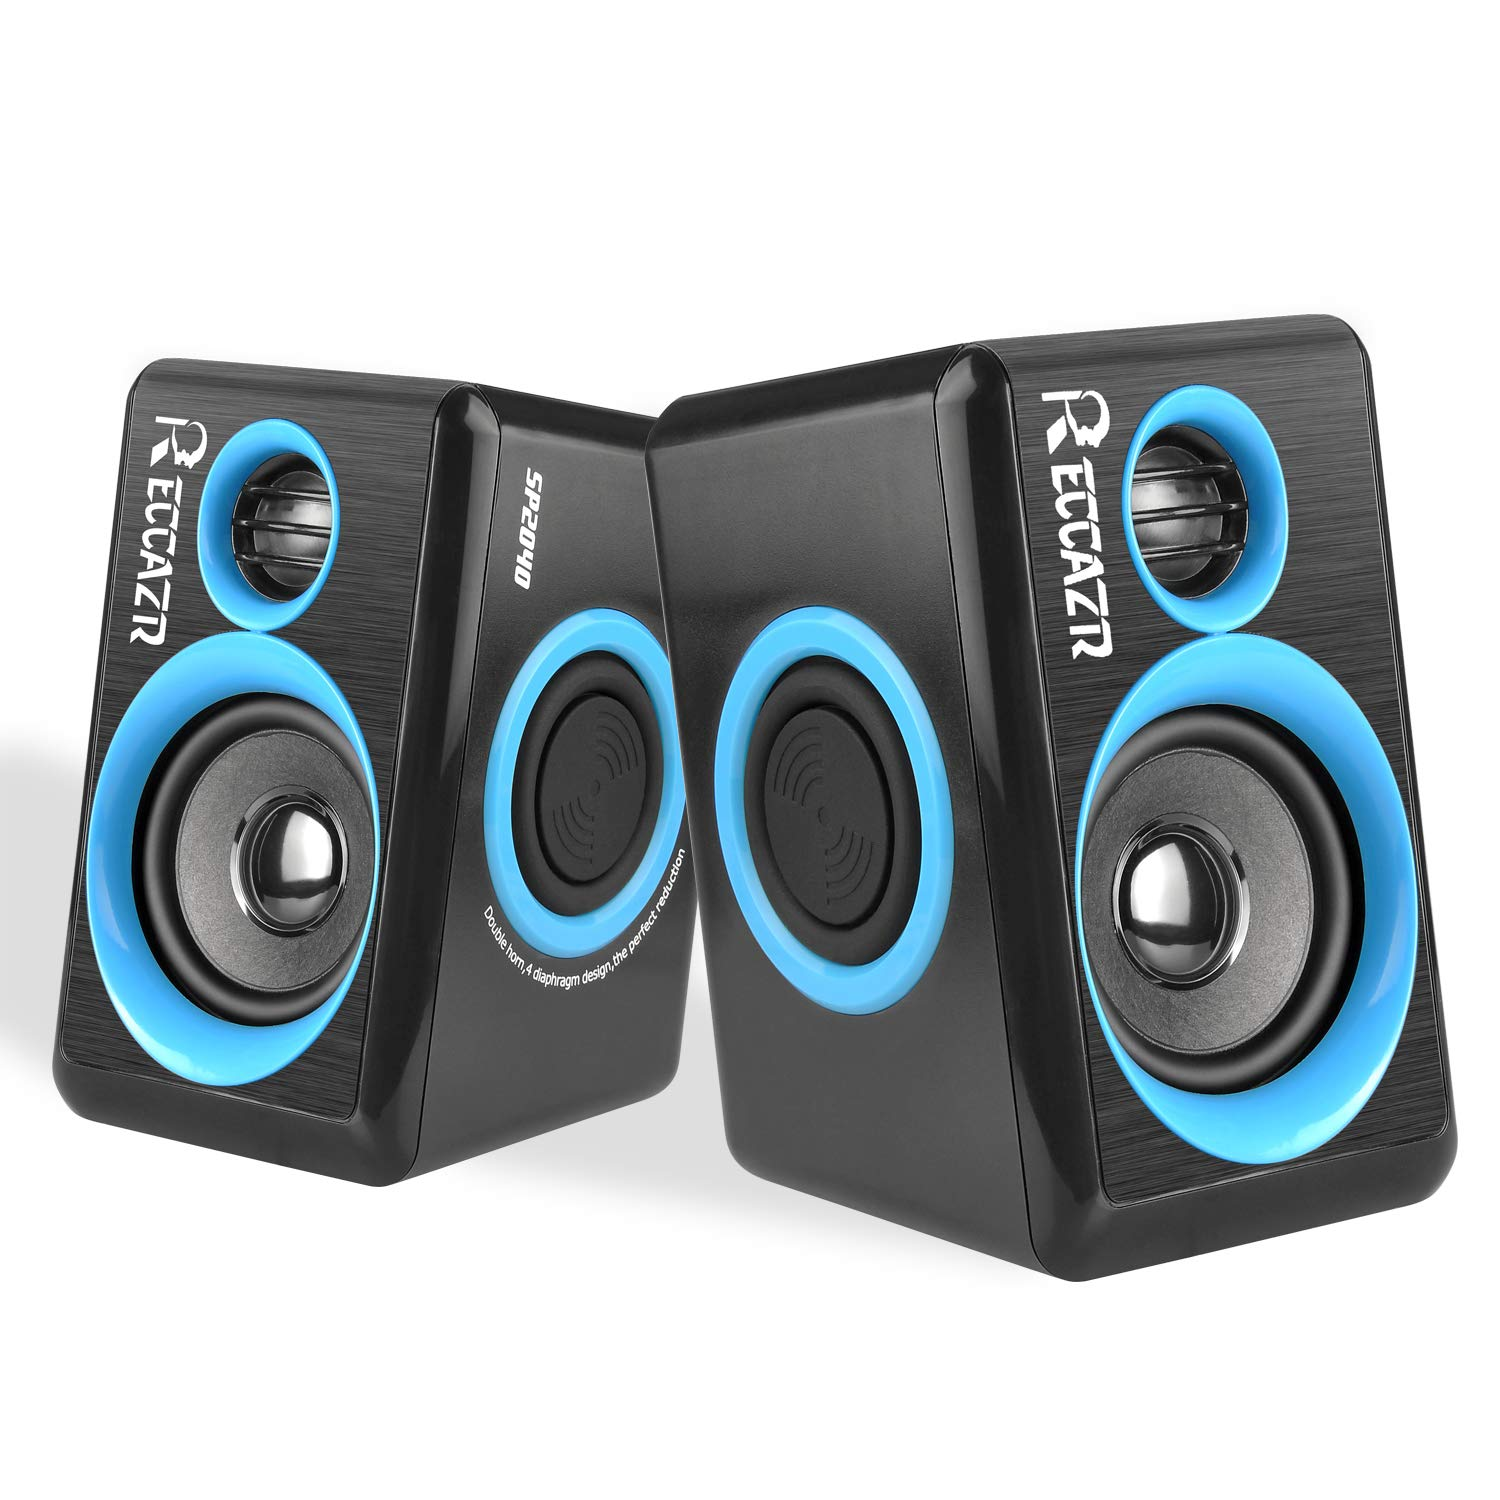 Surround Computer Speakers with Deep Bass USB Wired Powered Multimedia Speaker for PC/Laptops/Smart Phone RECCAZR Built-in Four Loudspeaker Diaphragm